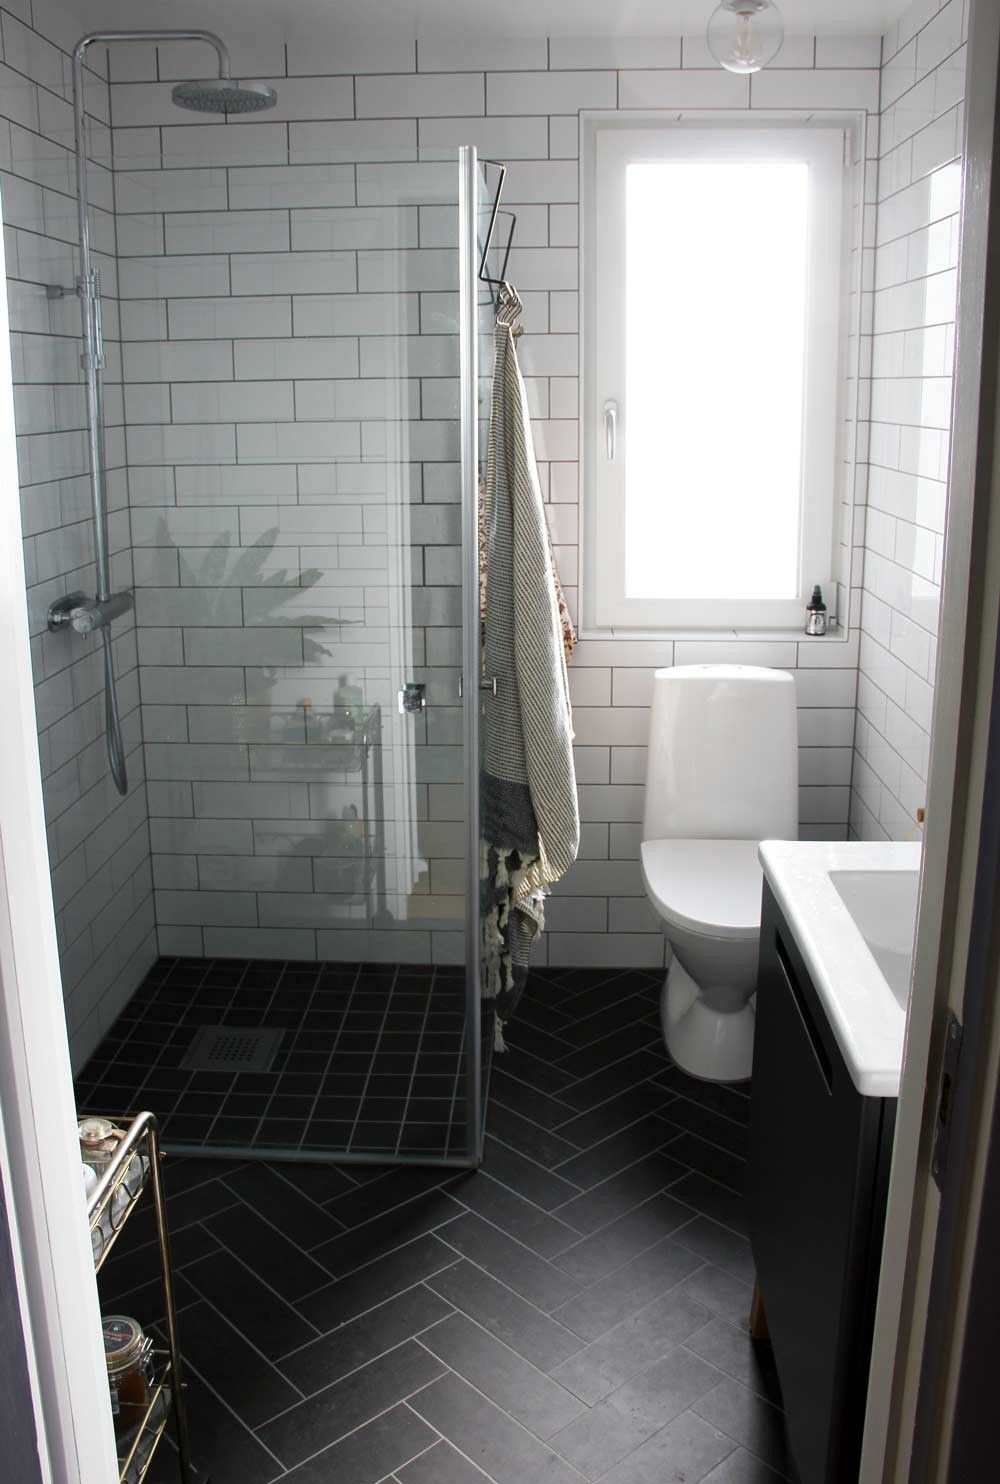 I Love Everything About This Bathroom! The Black Herringbone Floor, The  White Subway Tiles